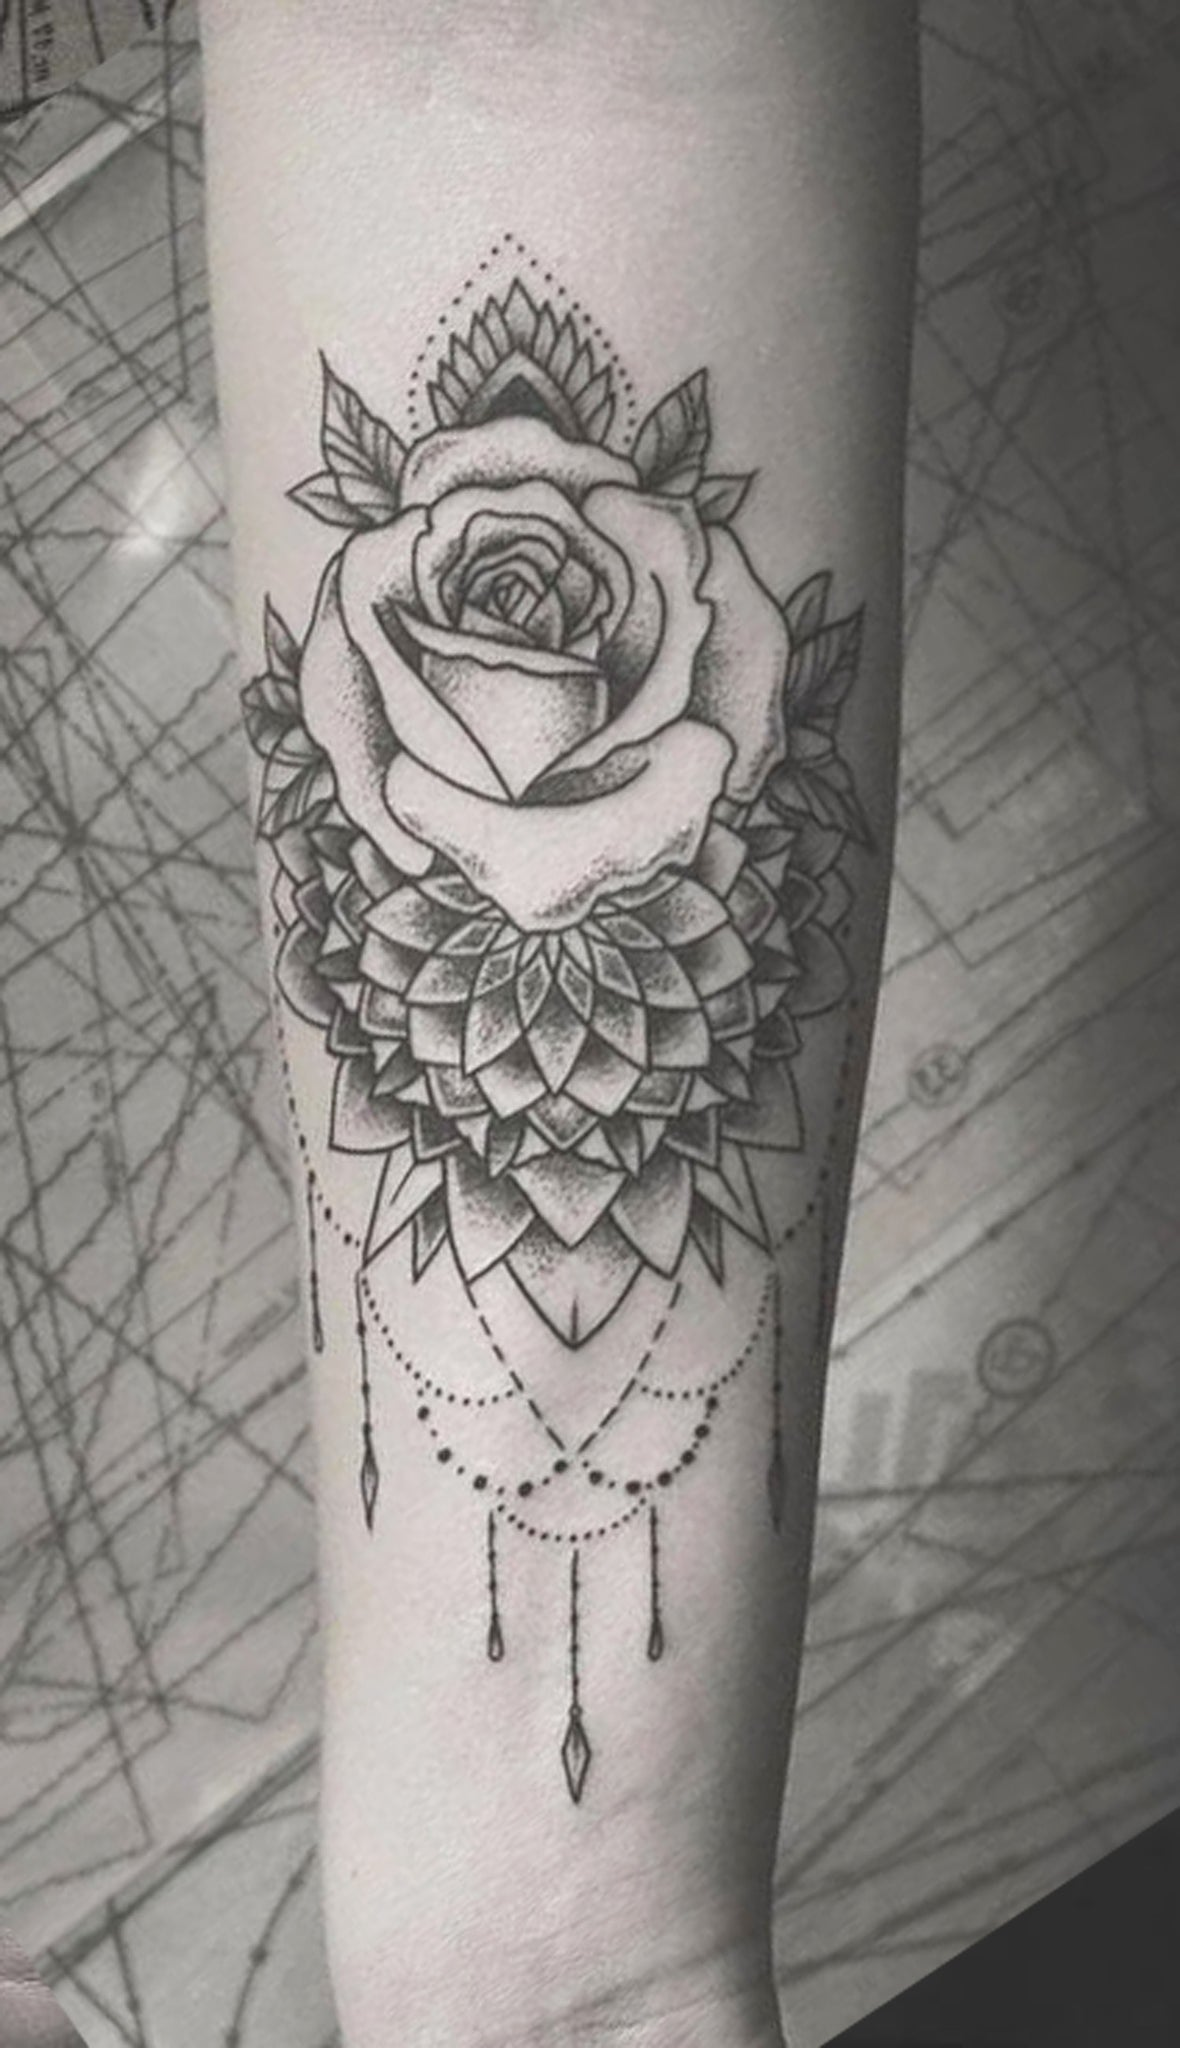 Boho Black Rose Chandelier Forearm Tattoo Ideas for Women - Mandala Lotus Flower Arm Sleeve Tat -  ideas de tatuaje de antebrazo rosa - www.MyBodiArt.com